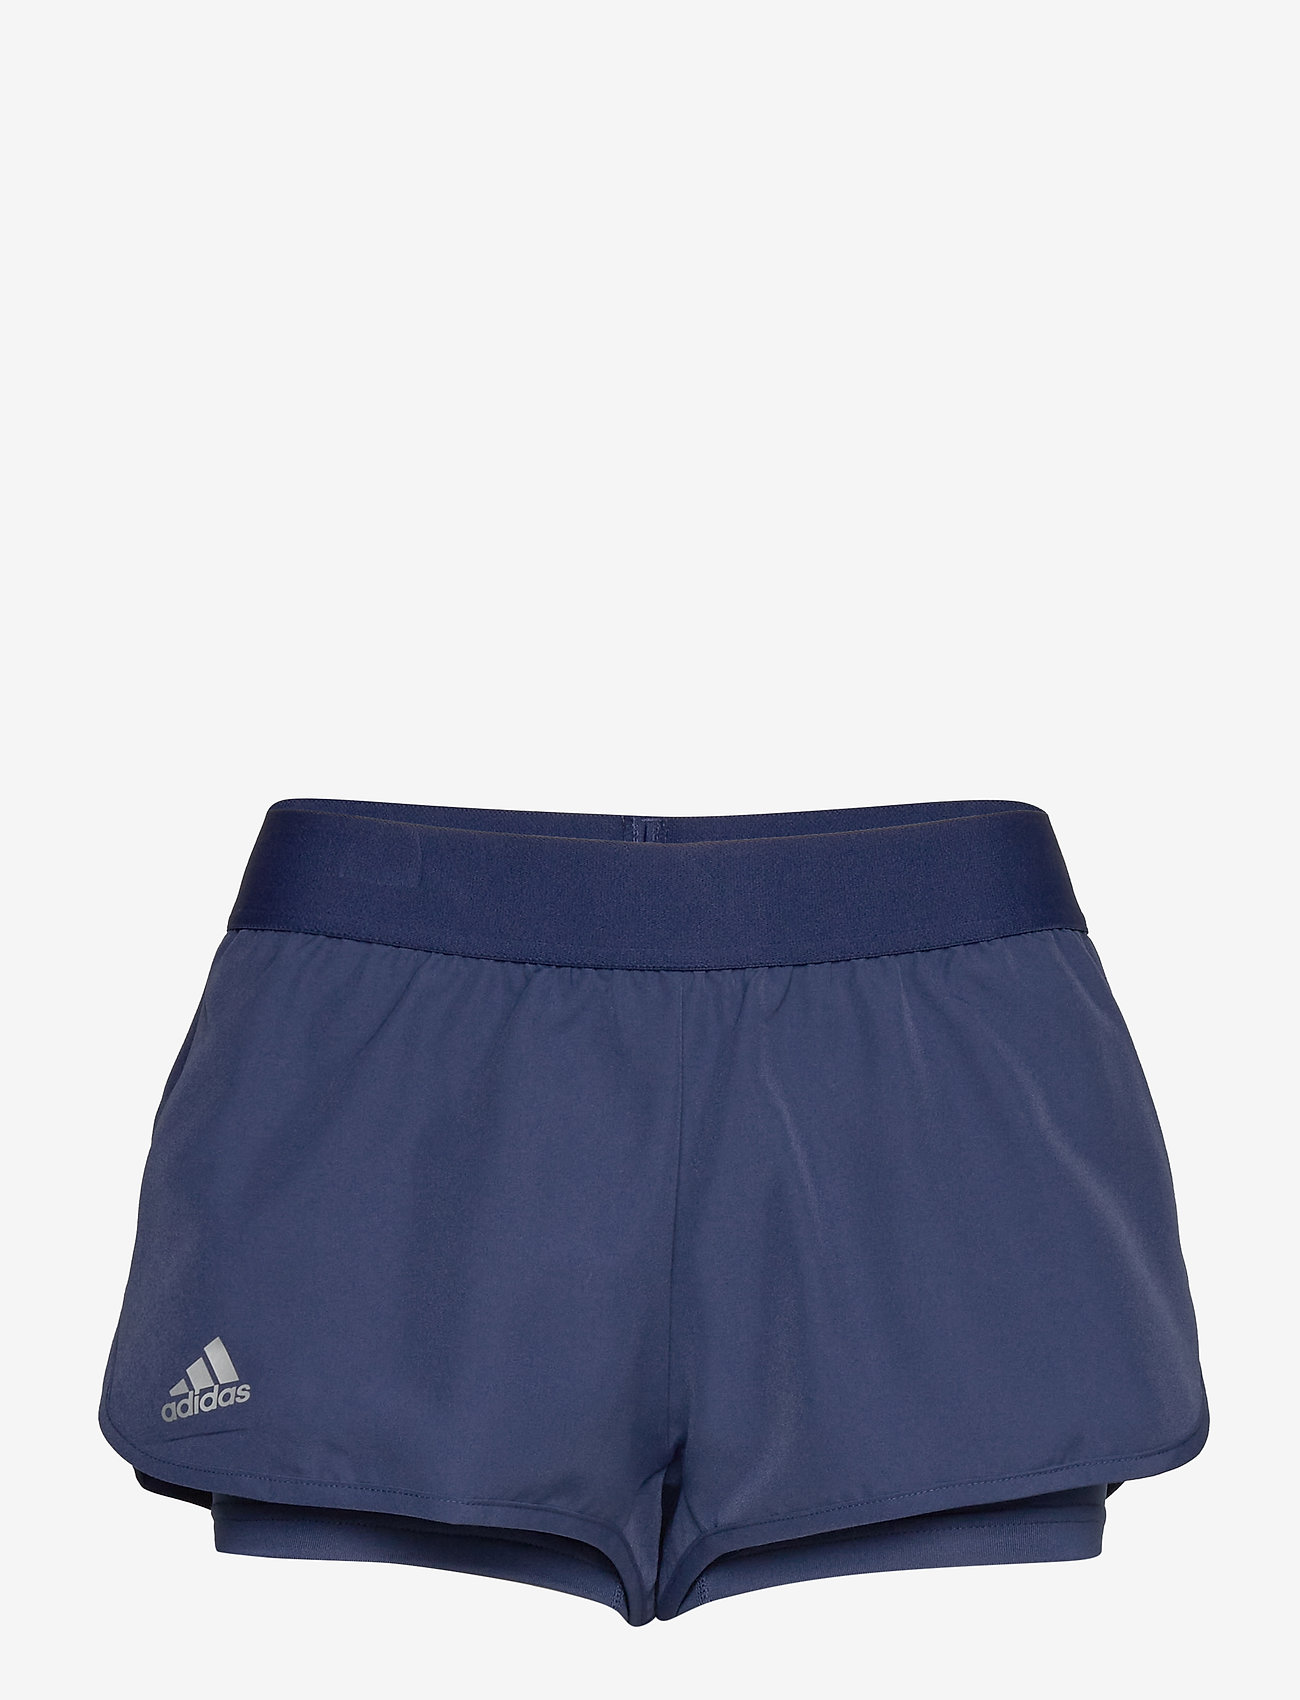 adidas Performance - CLUB SHORT - spodenki treningowe - tech indig - 1